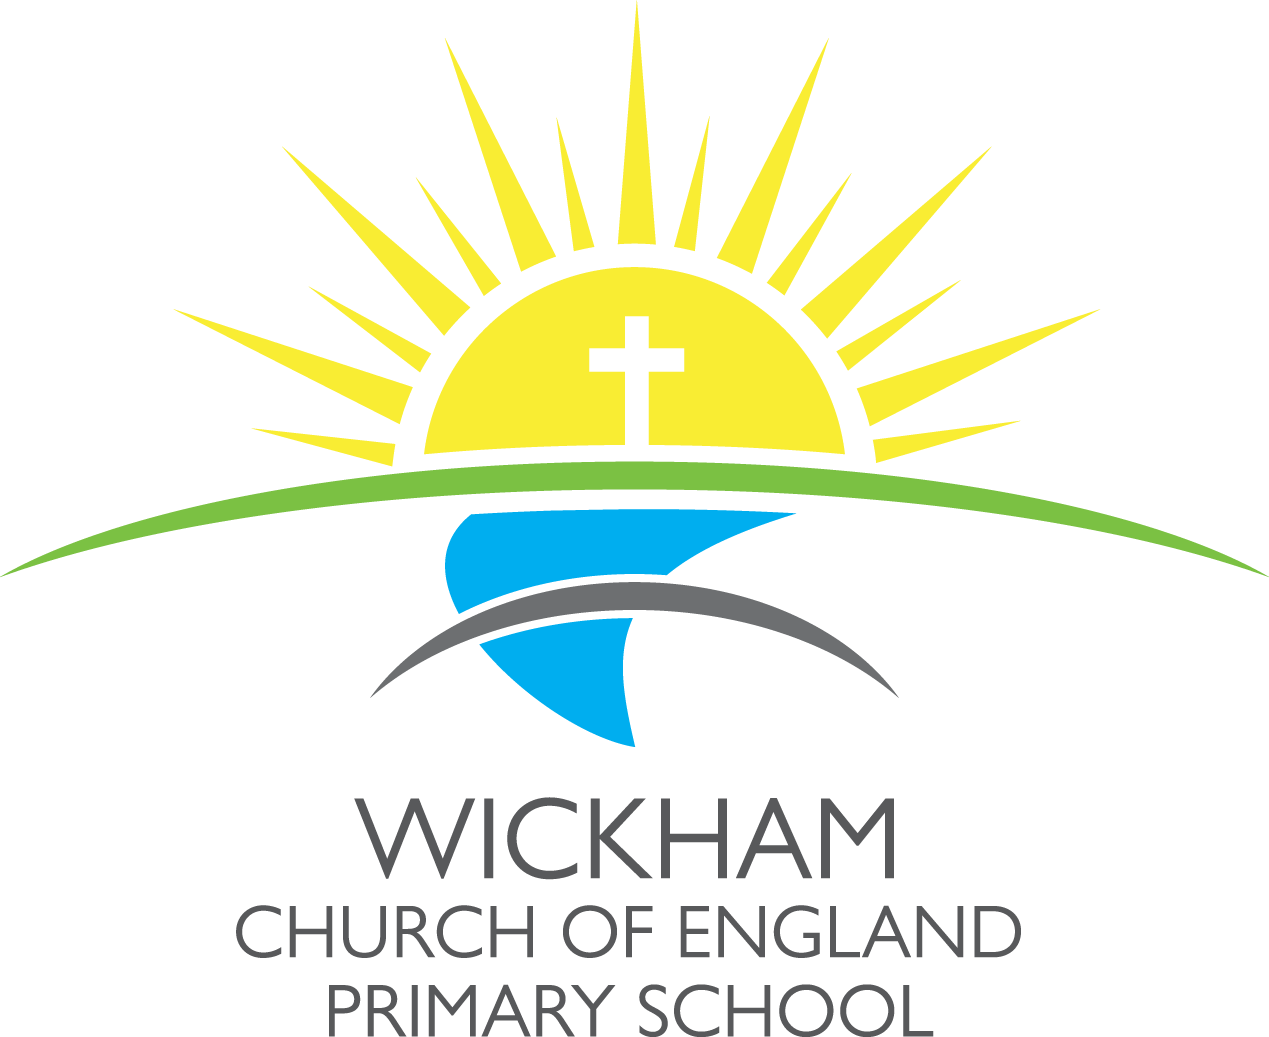 Wickham-Church-of-England-Primary-School-Logo_(1)